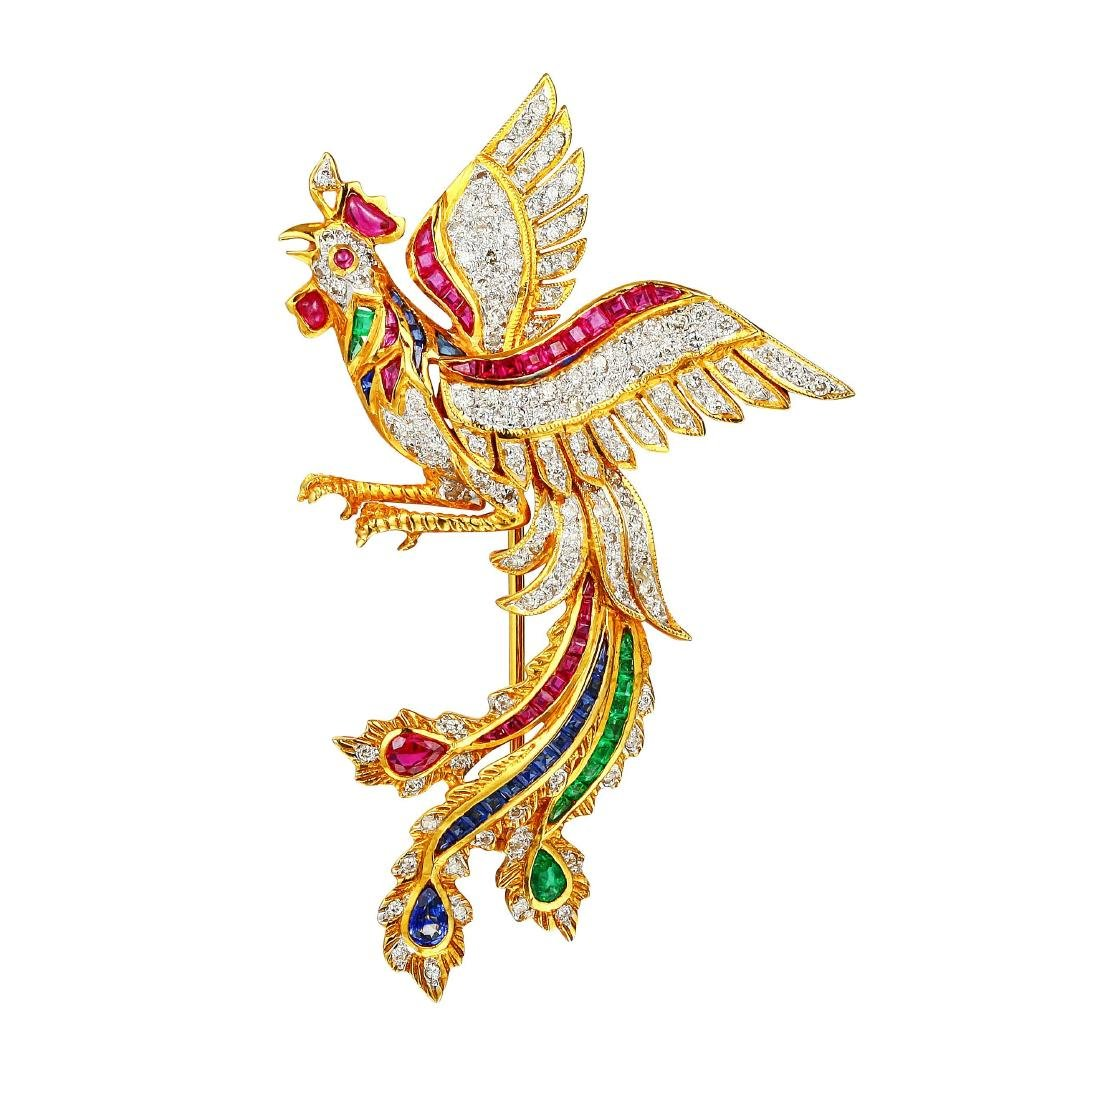 A Diamond and Multi-Gem Rooster Brooch